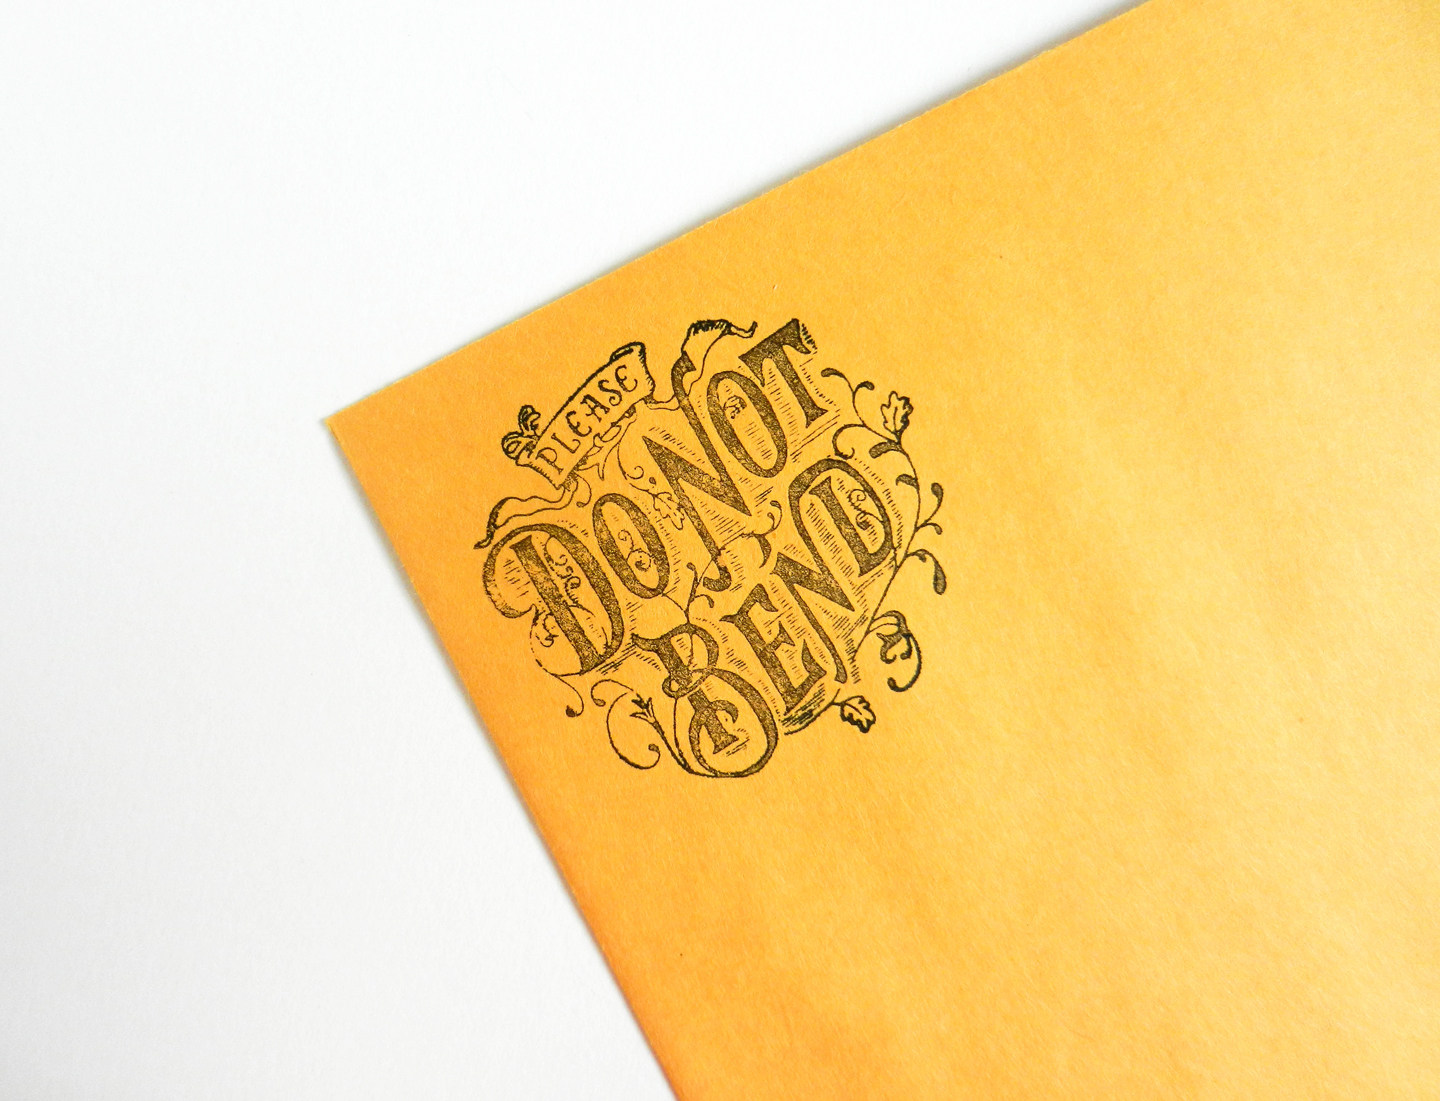 Do Not Bend Stamp | The Postman's Knock